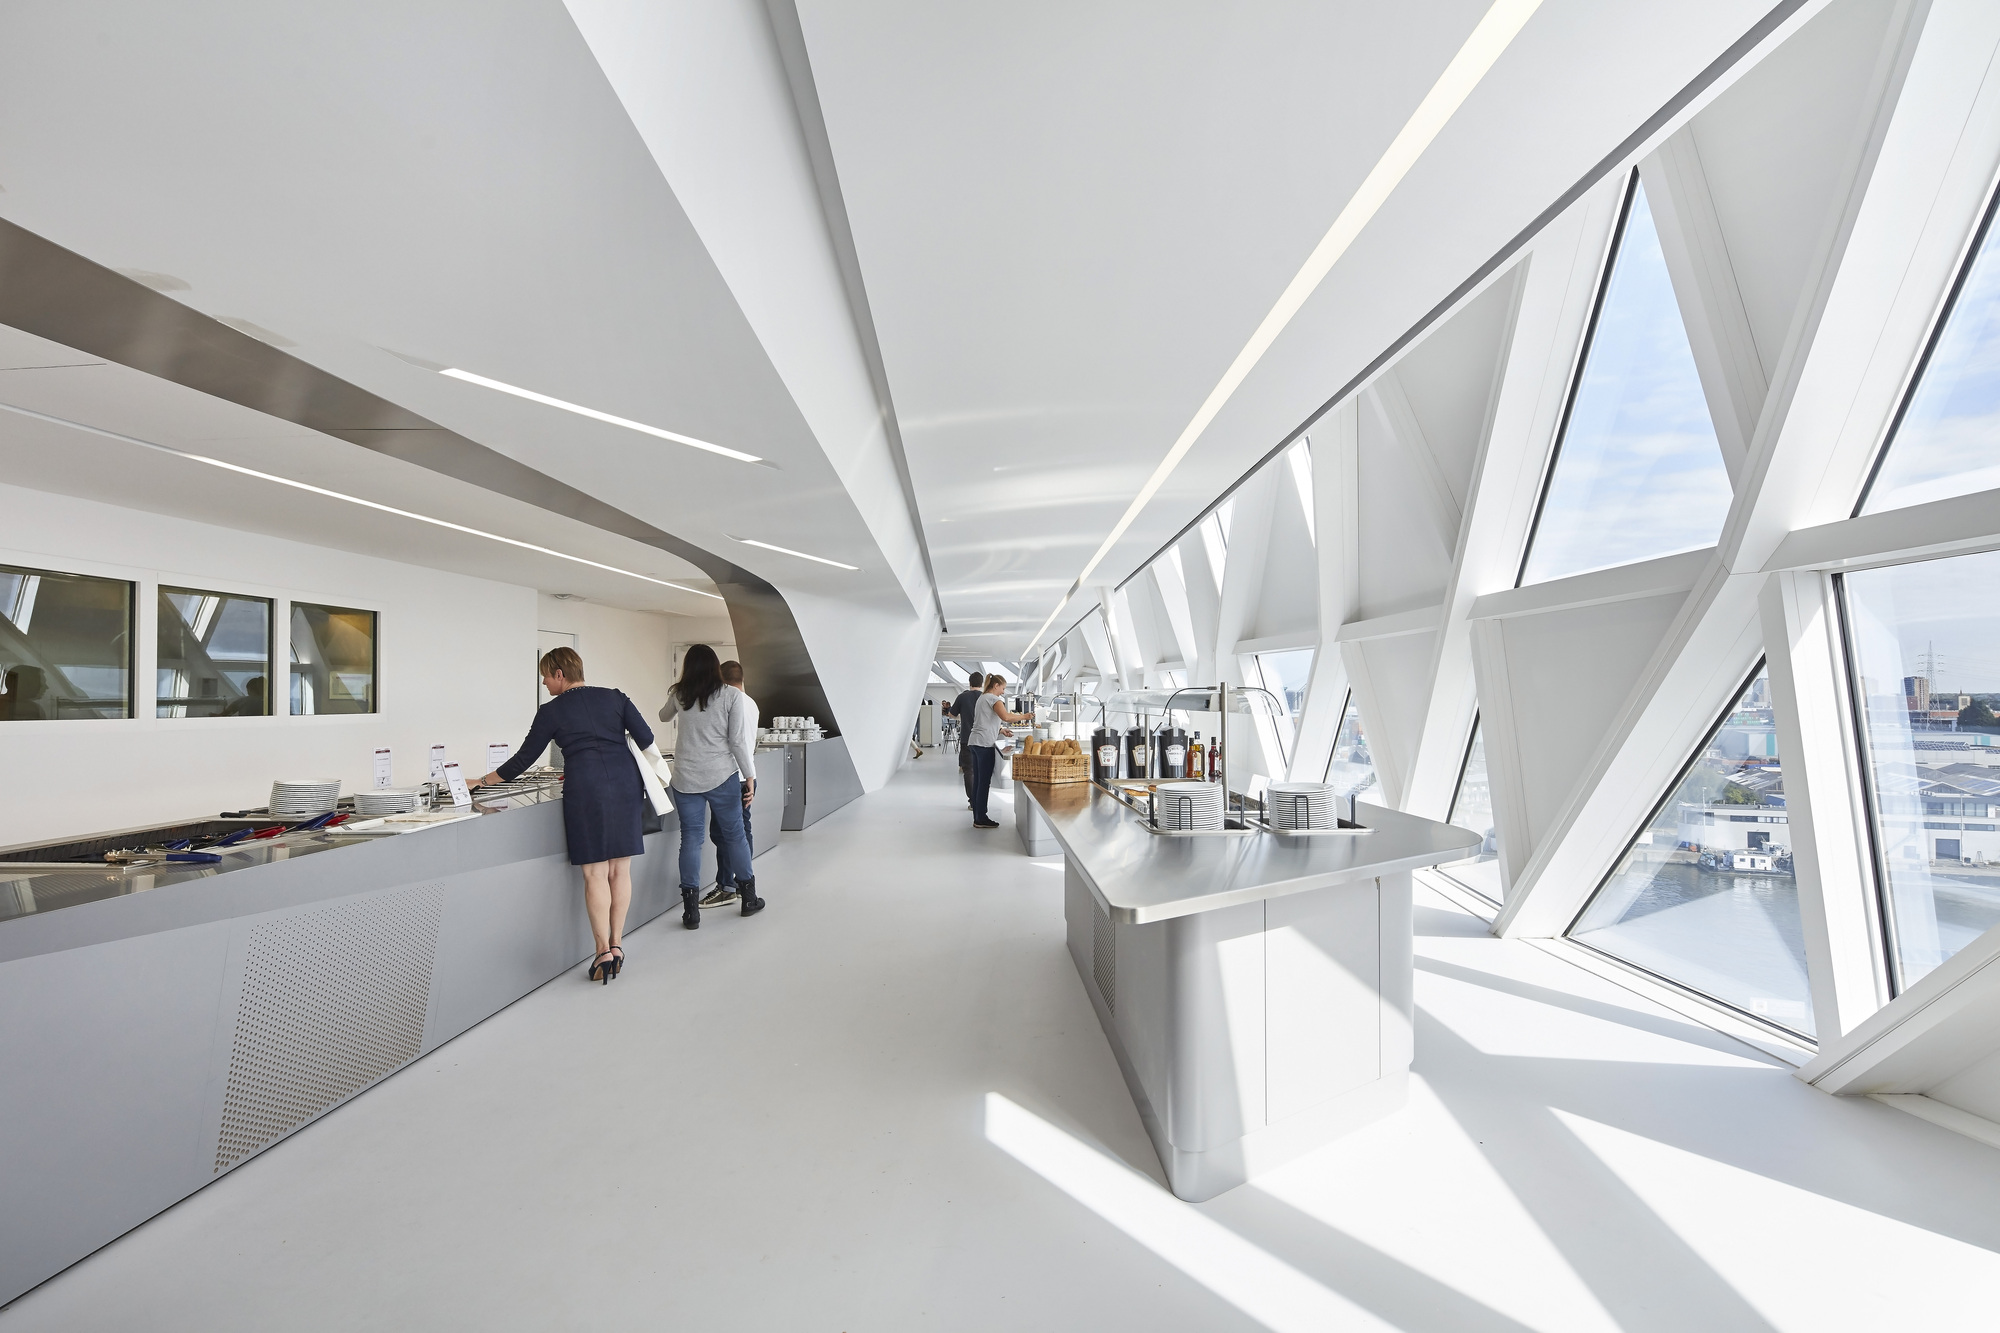 Gallery of antwerp port house zaha hadid architects 17 for Office design zaha hadid